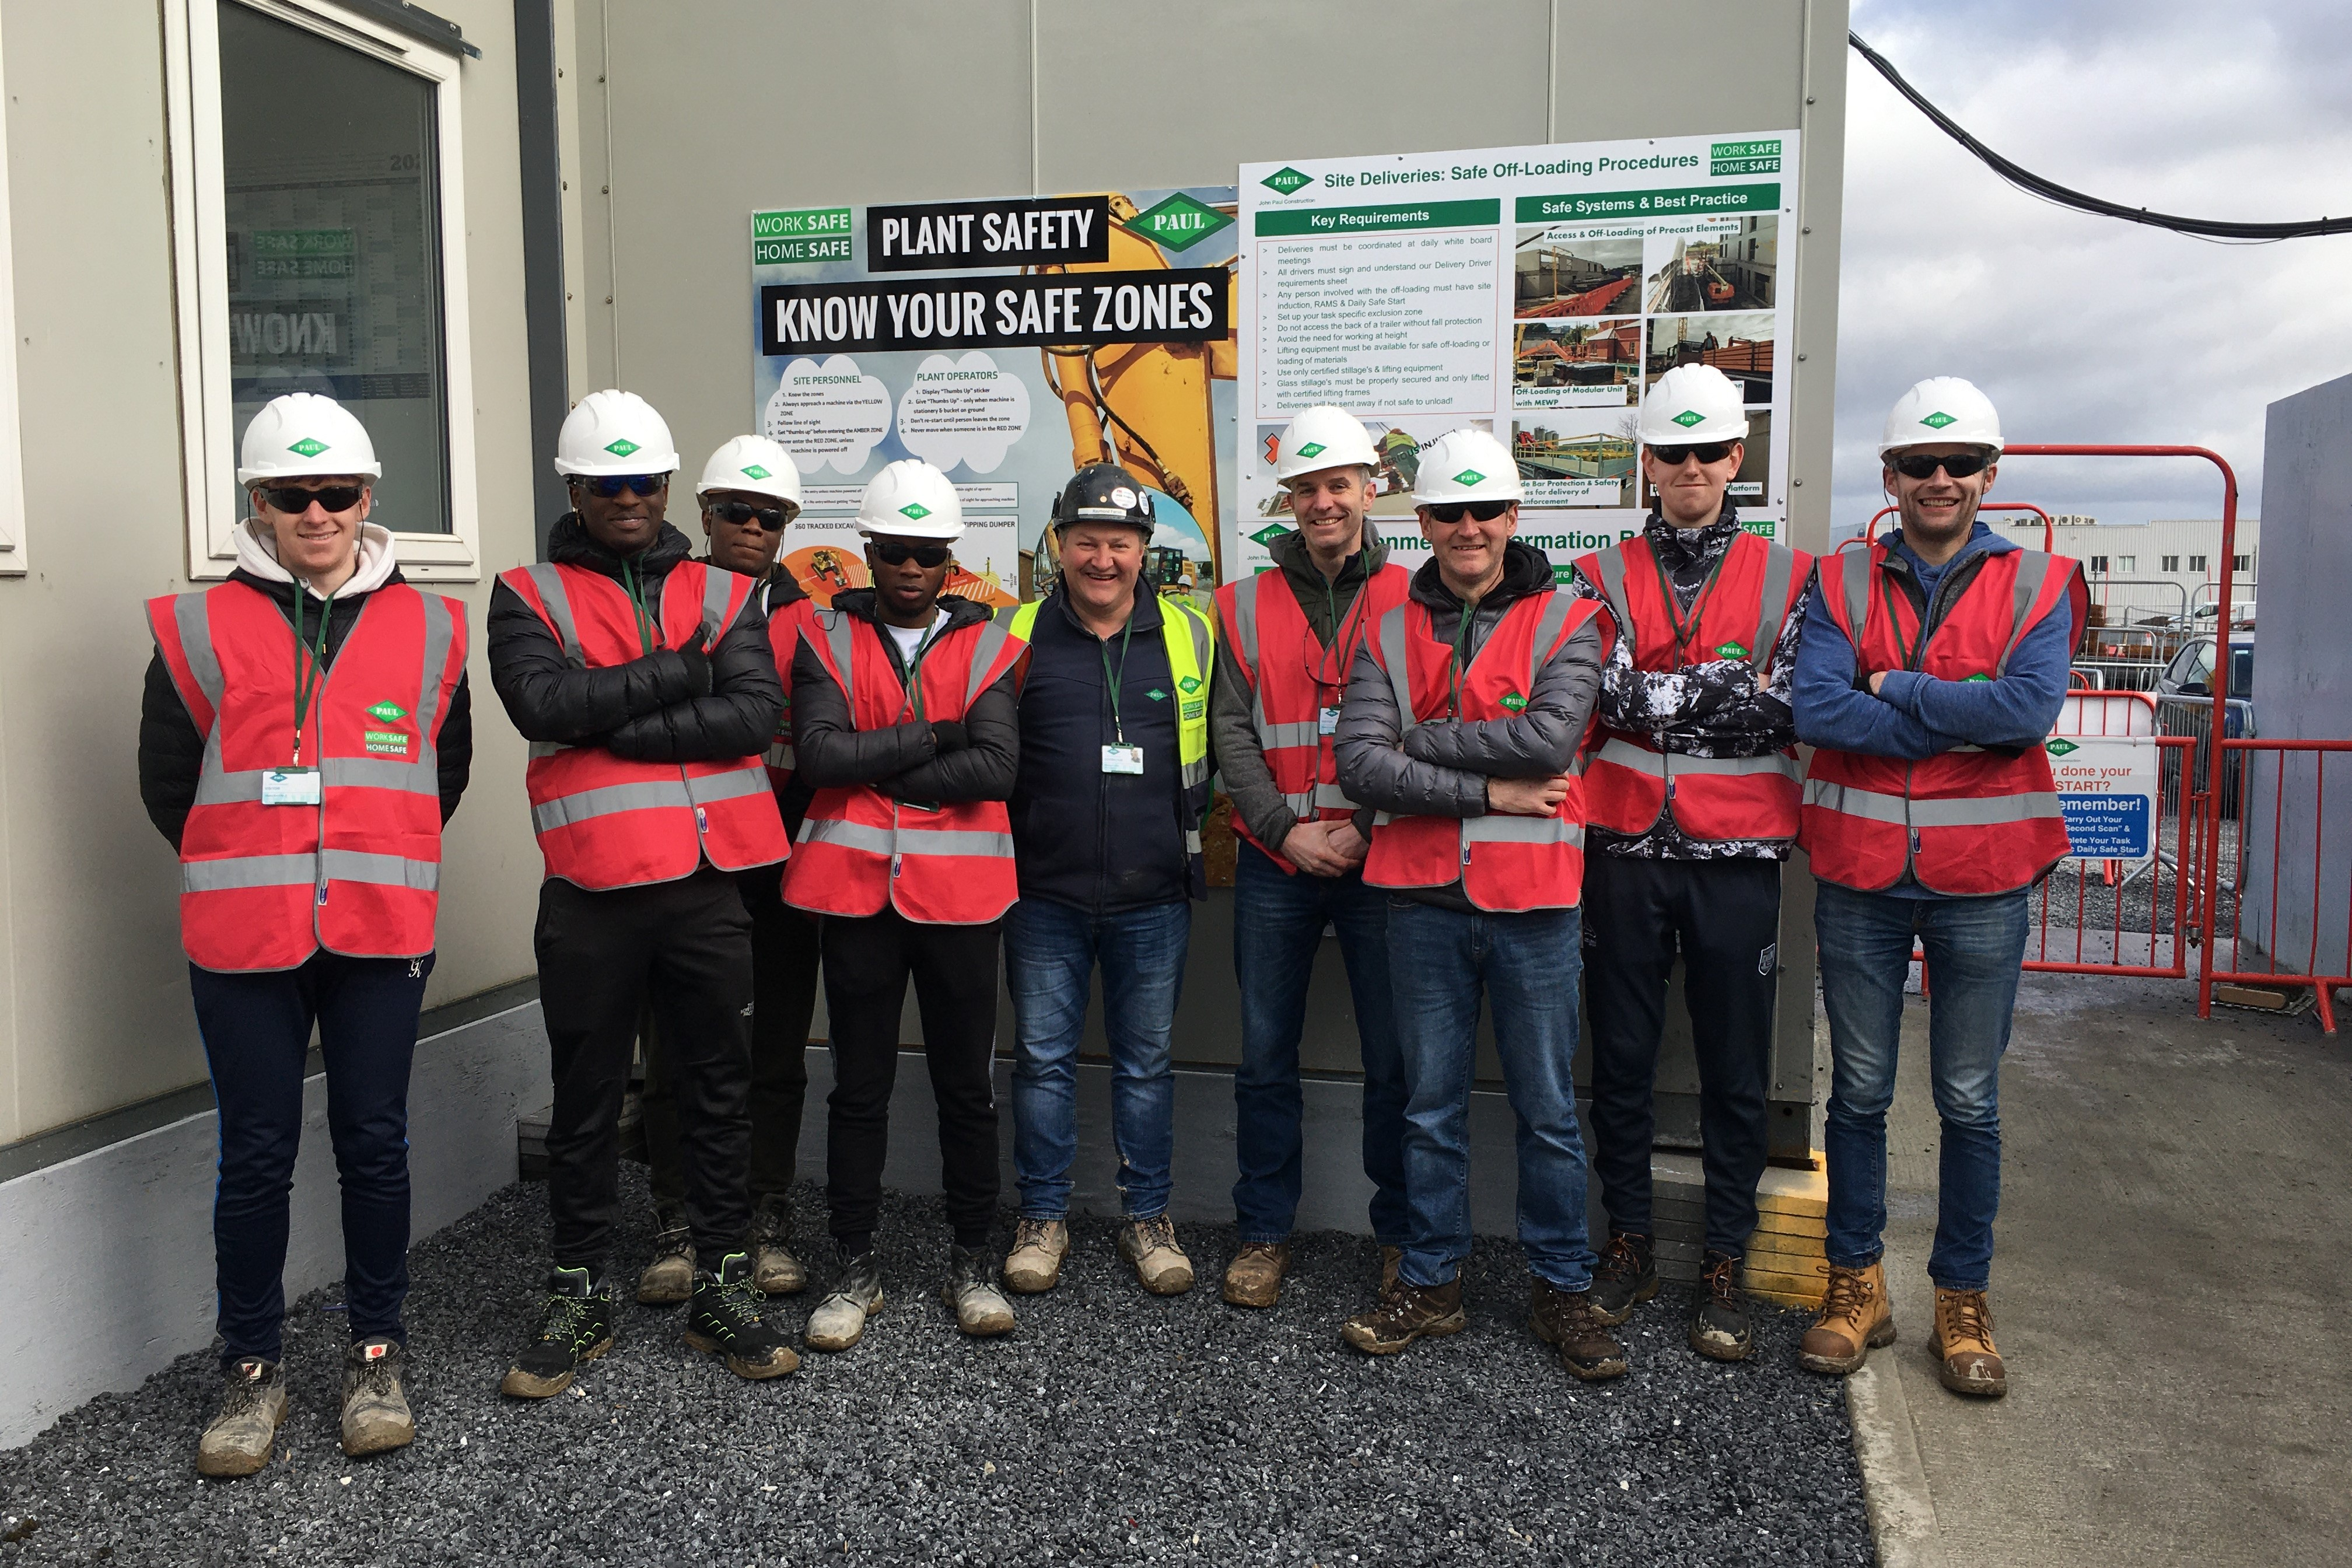 Staff and students from the Department of the Built Environment with John Paul's Site Manager Ray Farrell